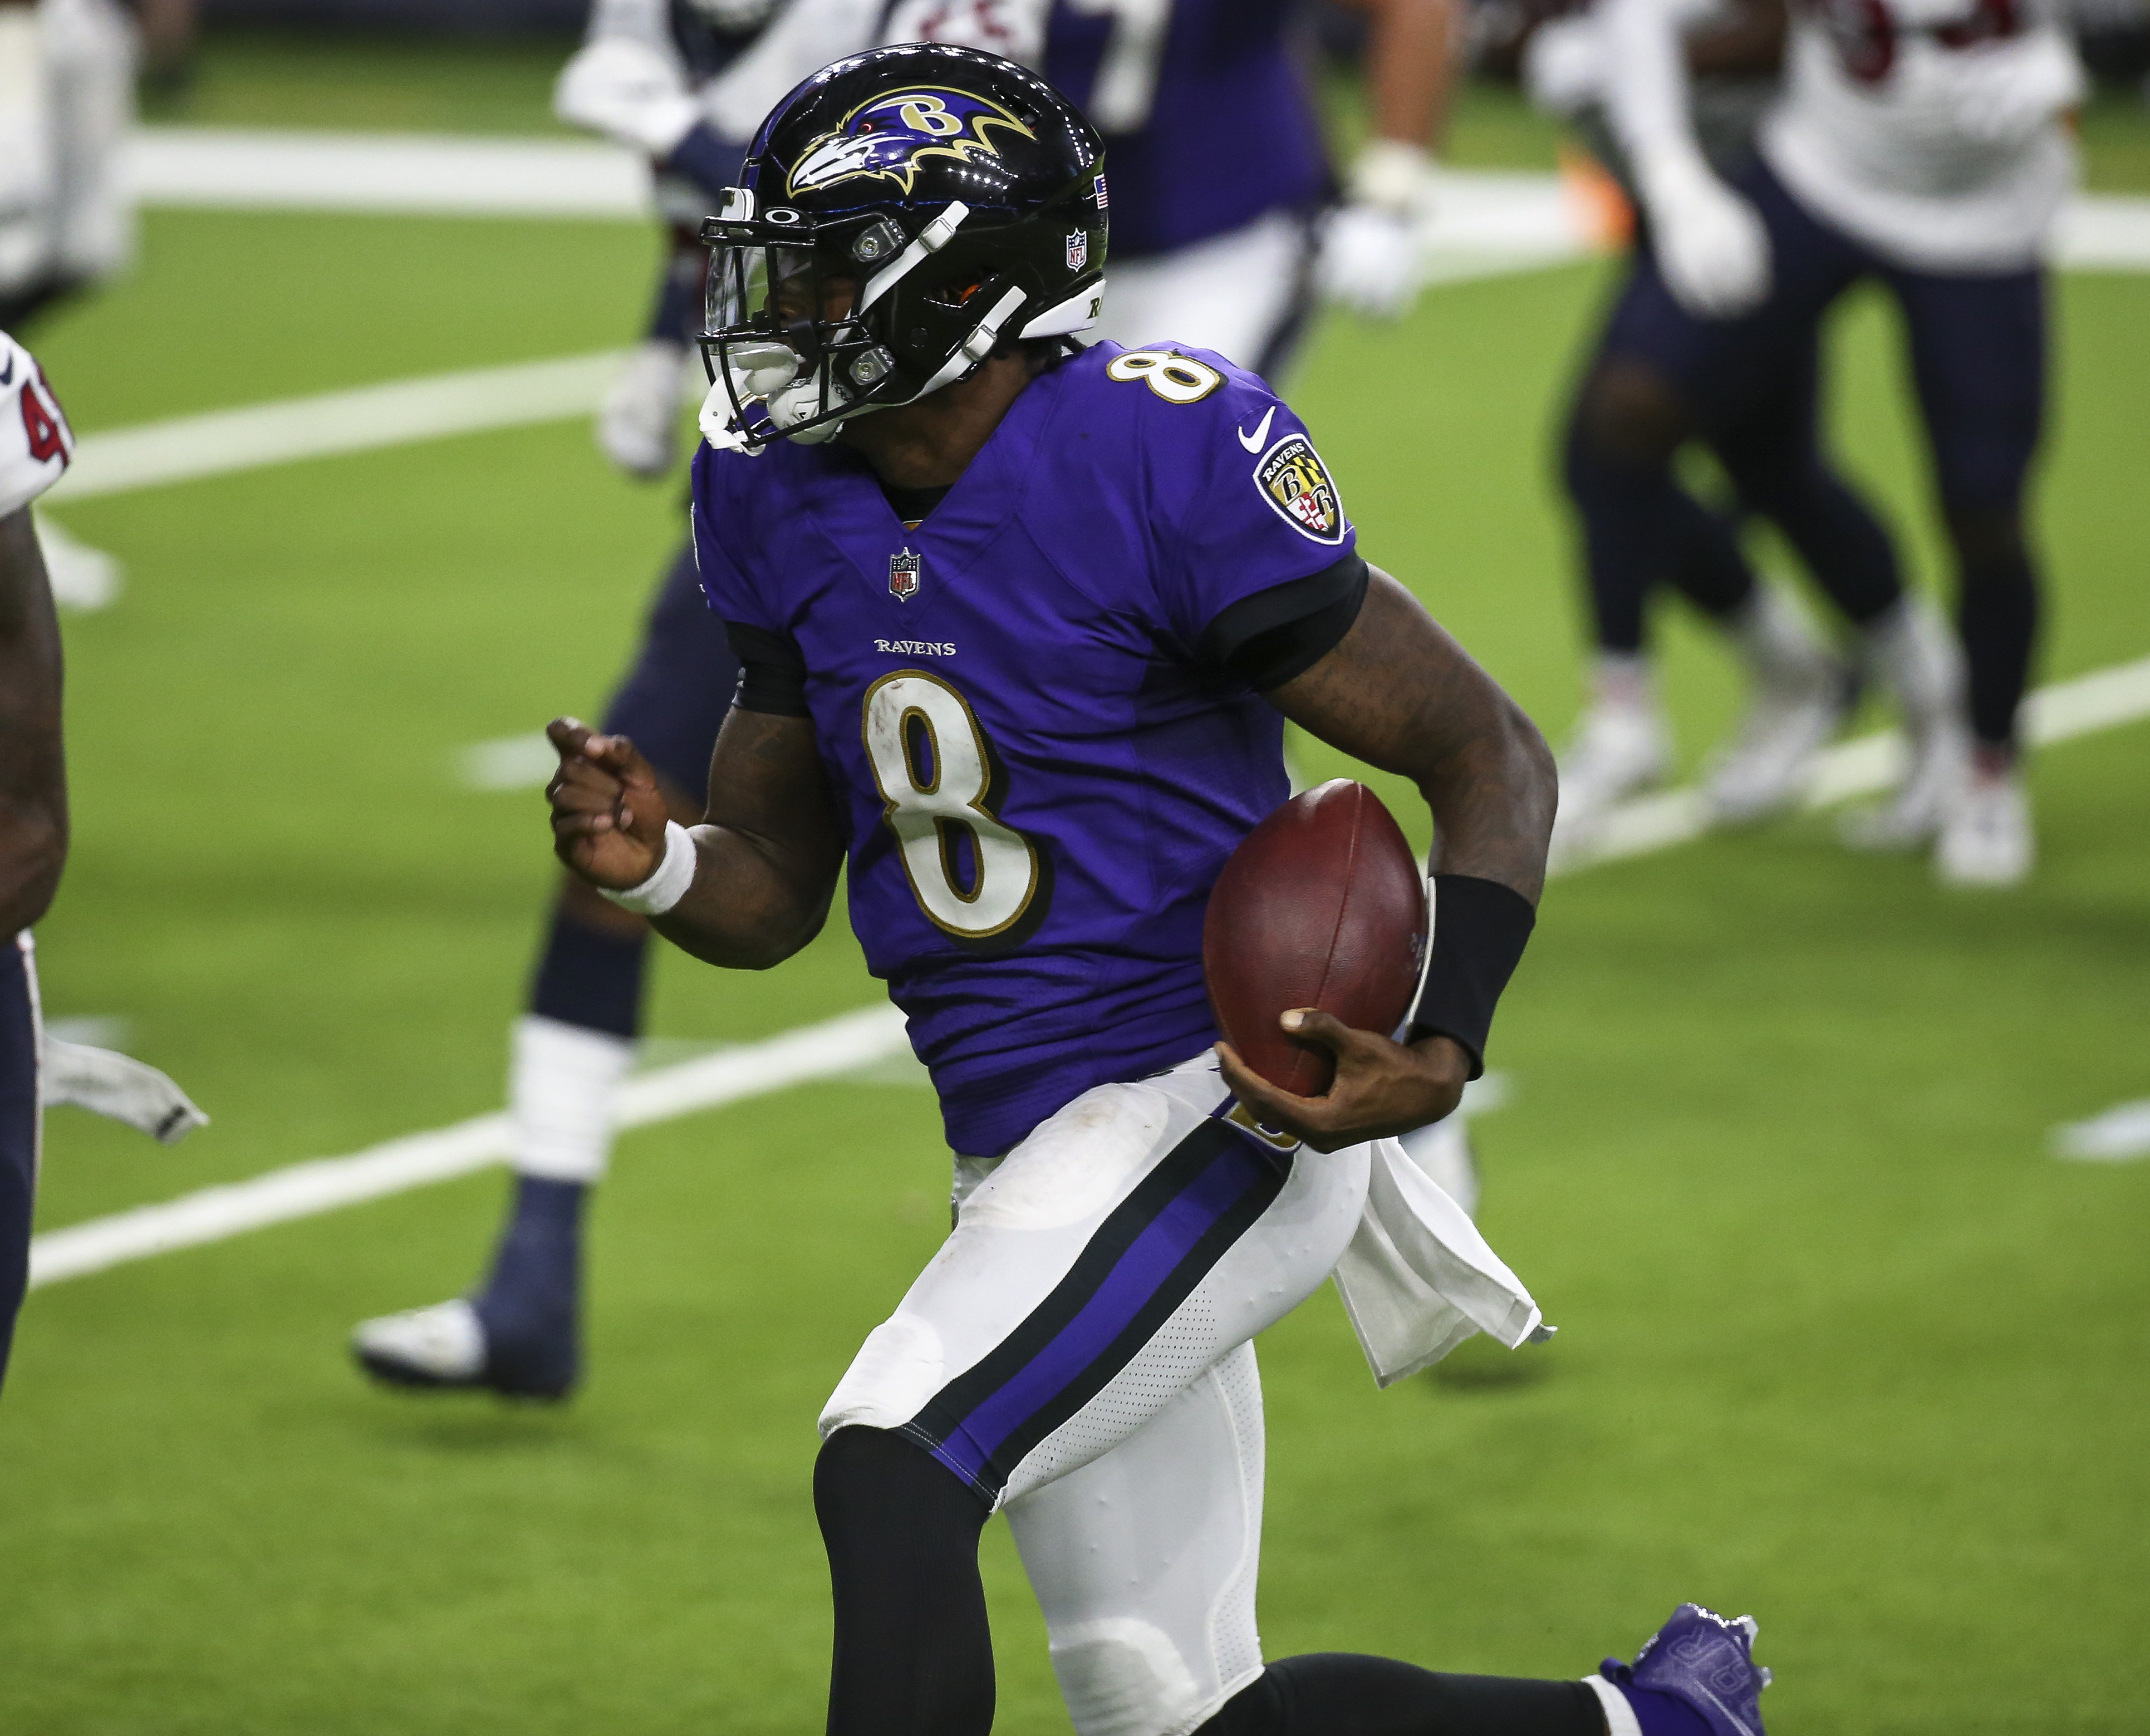 Ravens roll past Giants, 27-13, keep playoff hopes alive